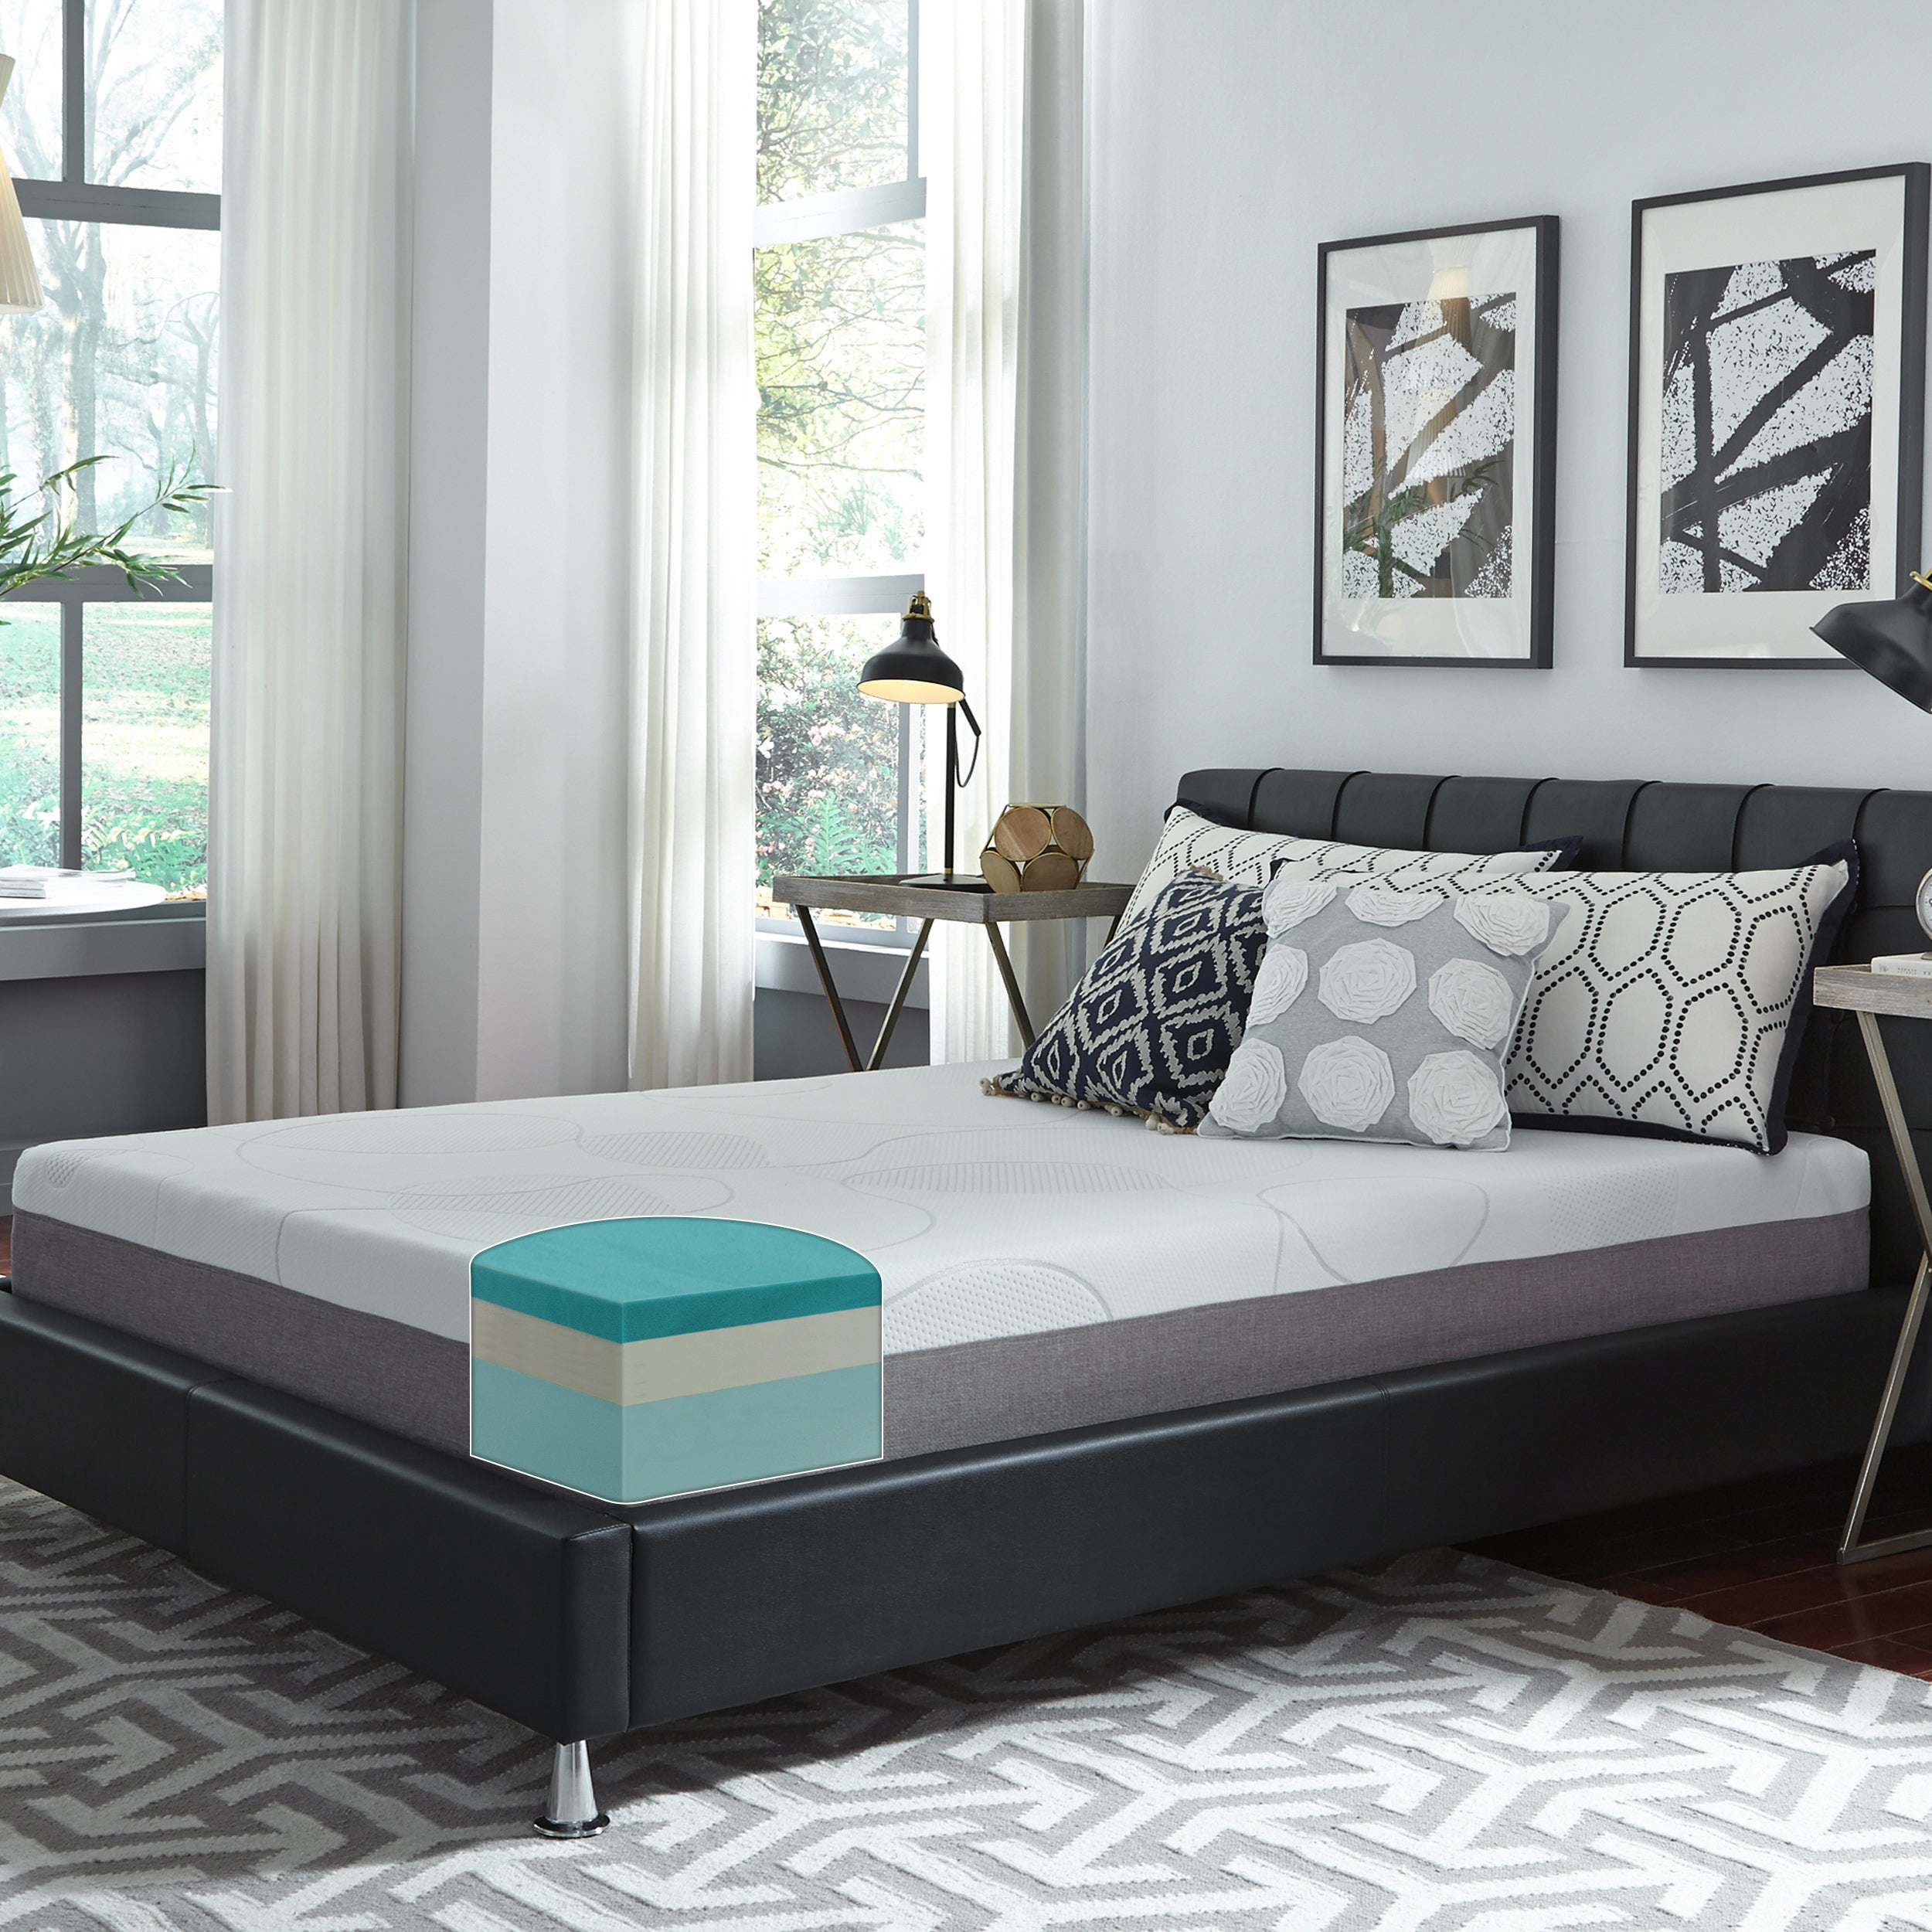 super popular 1914a fbded Slumber Solutions Choose Your Comfort 10-inch Gel Memory Foam Mattress